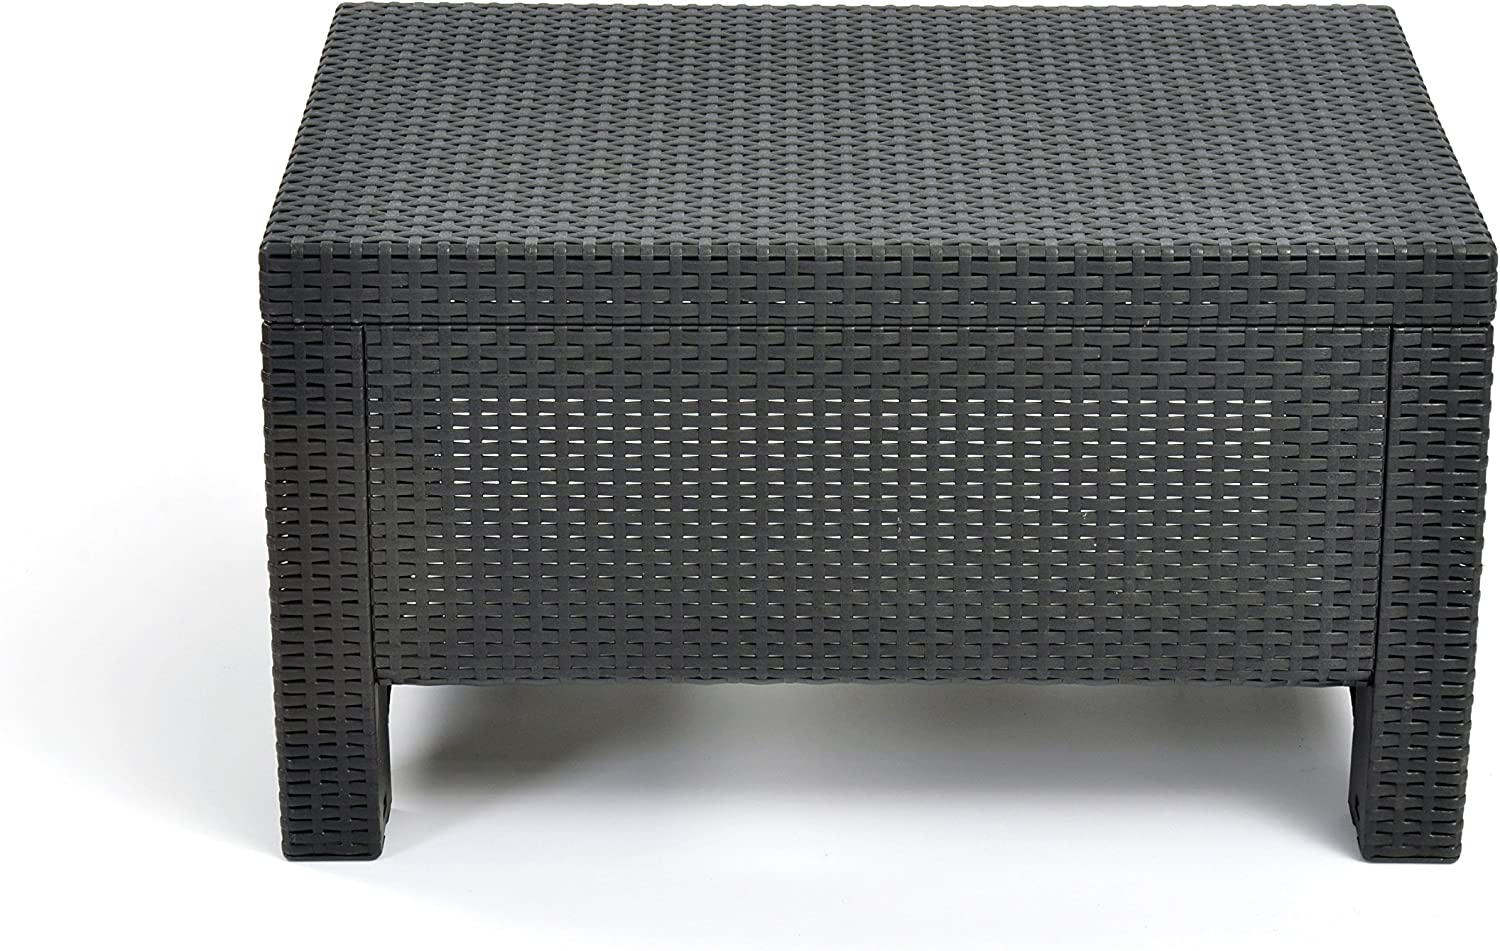 Keter Corfu Coffee Table Modern All Weather Outdoor Patio Garden Backyard Furniture, Charcoal : Coffee Tables : Garden & Outdoor